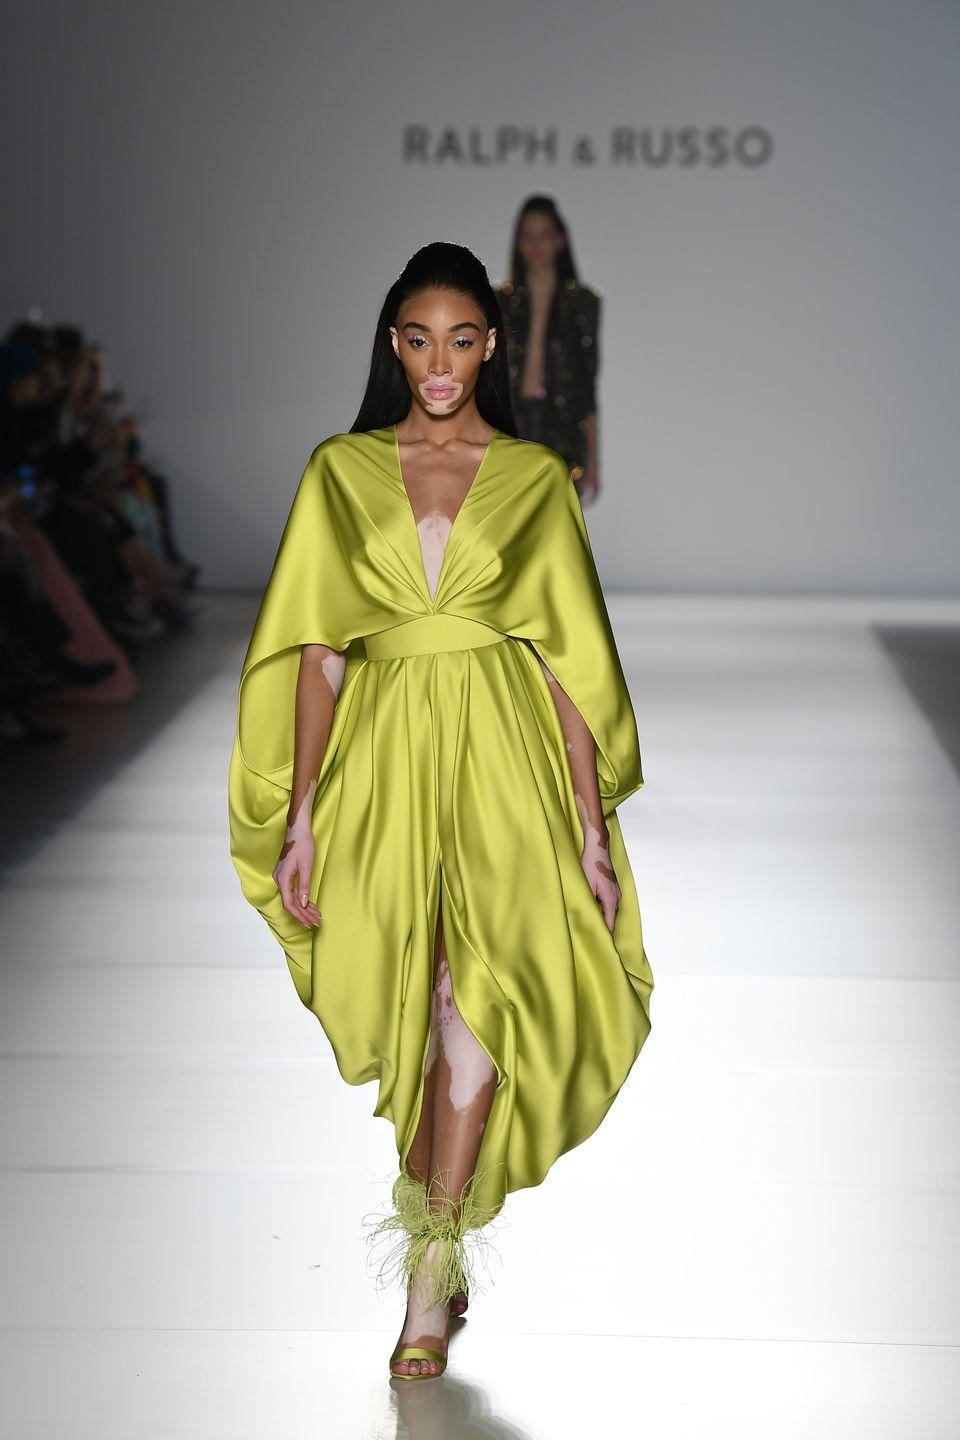 "<p>Winnie Harlow was a contestant on <em>America's Next Top Model</em> back in 2014, and although she didn't win that cycle, her modeling career has exploded. In <a href=""https://www.youtube.com/watch?v=LSbJYv0qMgc"" rel=""nofollow noopener"" target=""_blank"" data-ylk=""slk:her audition"" class=""link rapid-noclick-resp"">her audition</a>, she said she was bullied in school for her vitiligo, but she has been at the forefront of changing the beauty standards of the modeling industry. </p>"